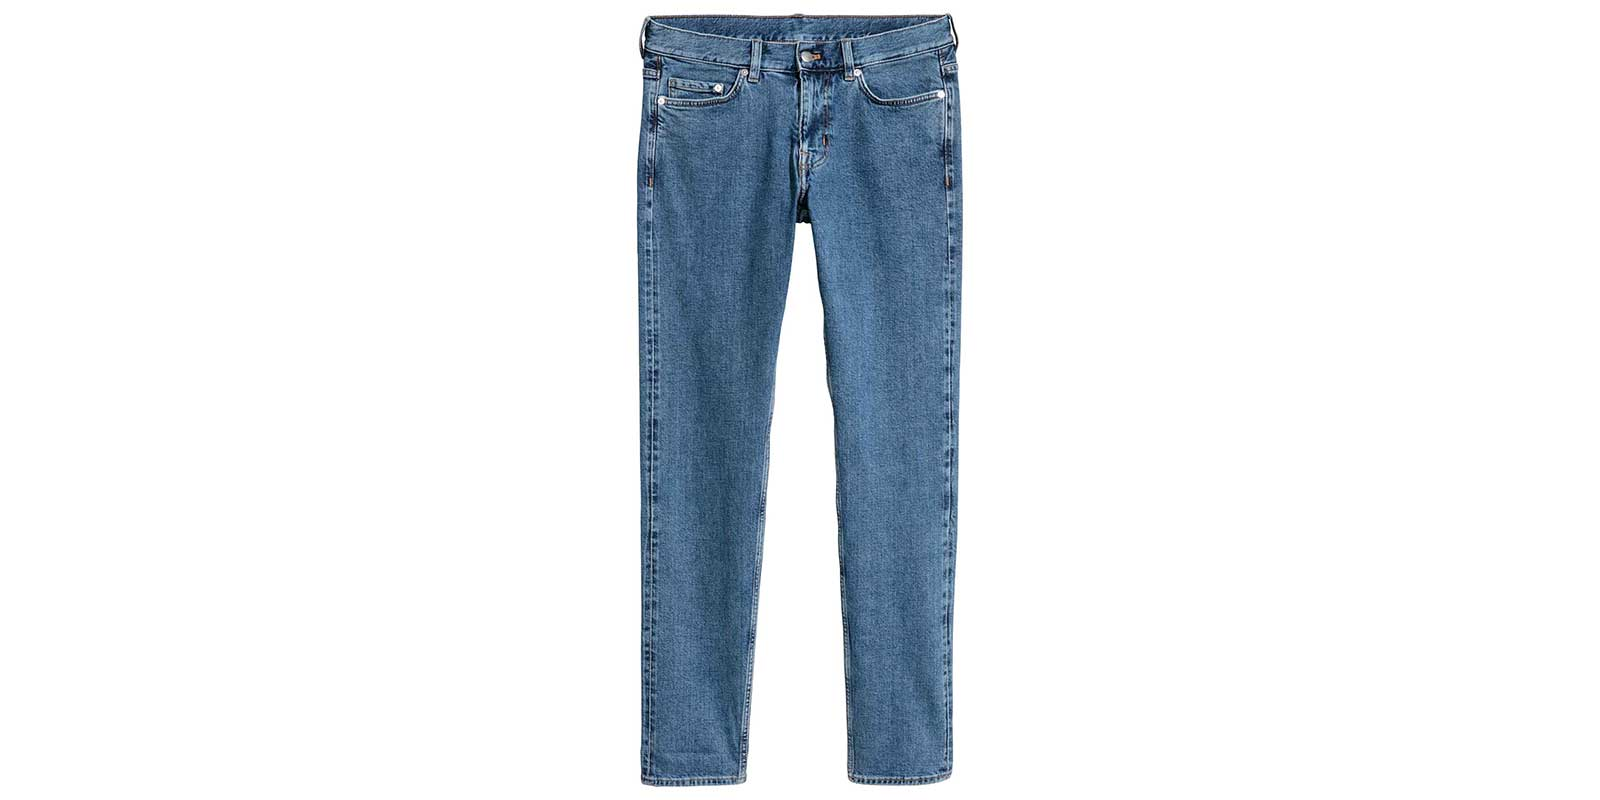 H&M Edition selvedge jeans